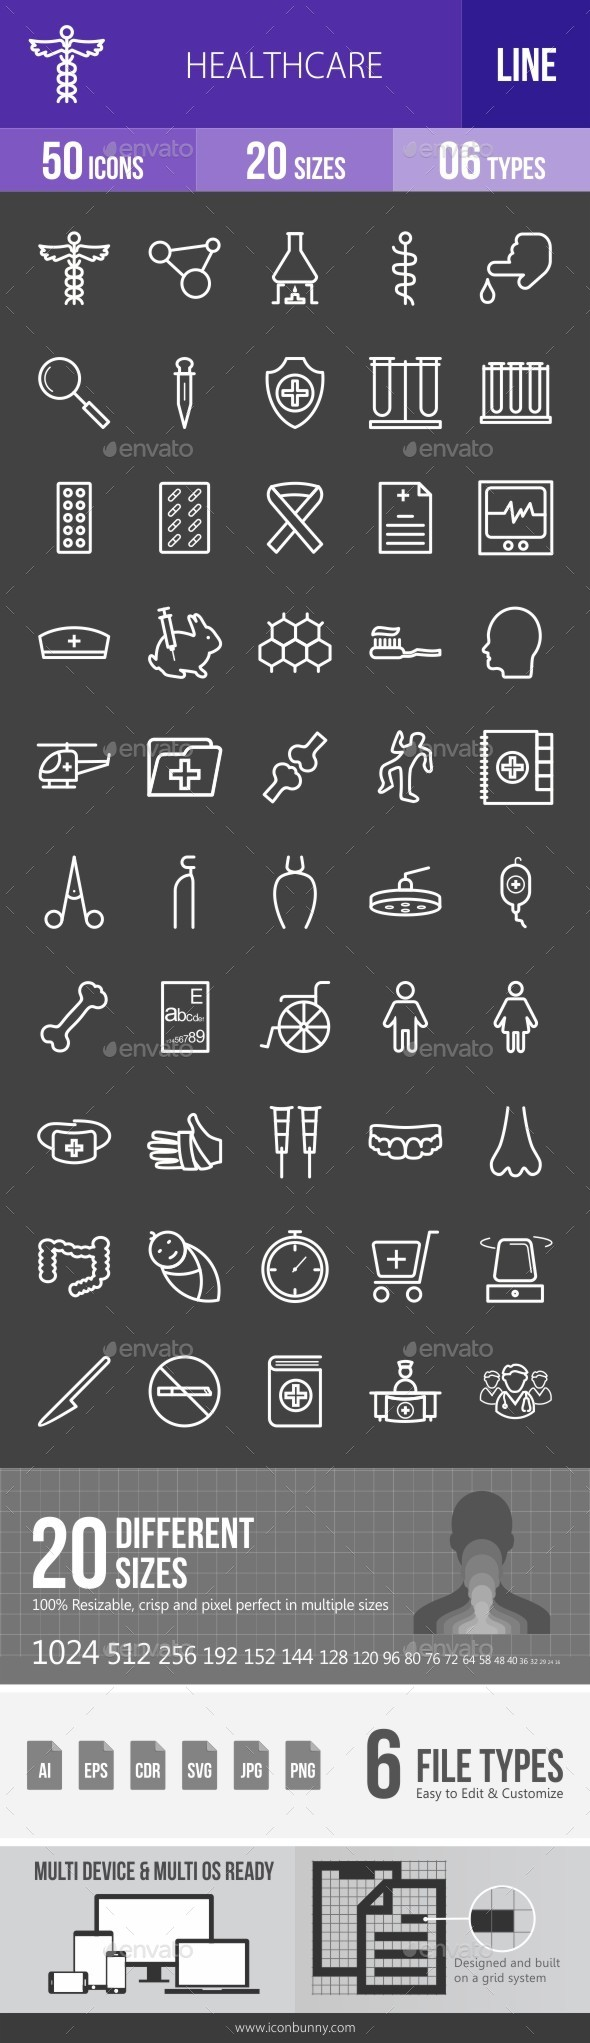 Healthcare Line Inverted Icons - Icons